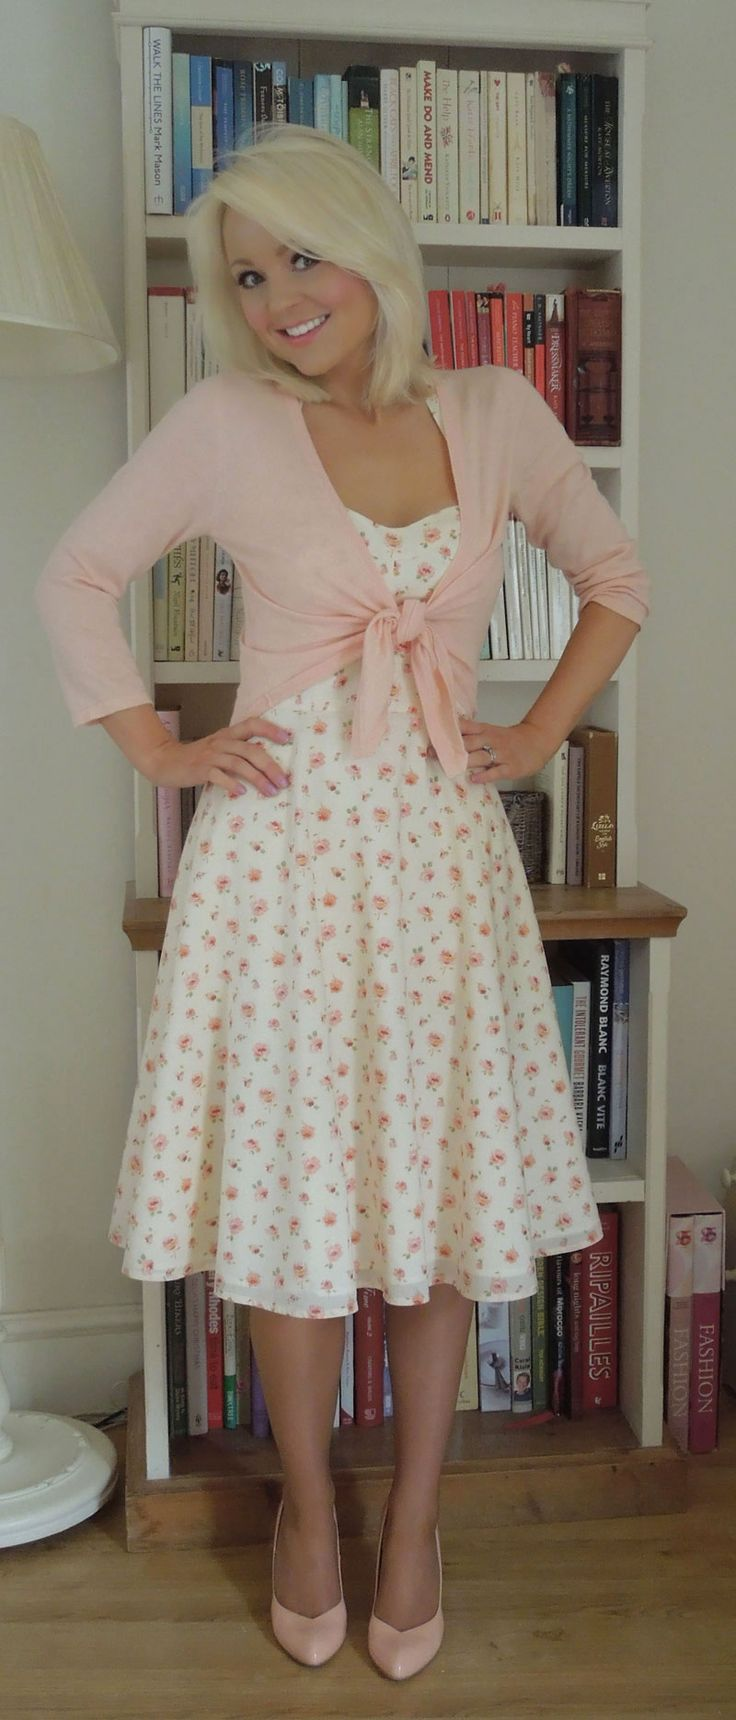 I really love this, BUT the dress is way too low, and also I would rather the cardigan have buttons instead of tying it.  And with those easy changes, I would look so super sweet and a classy vintage look! :)